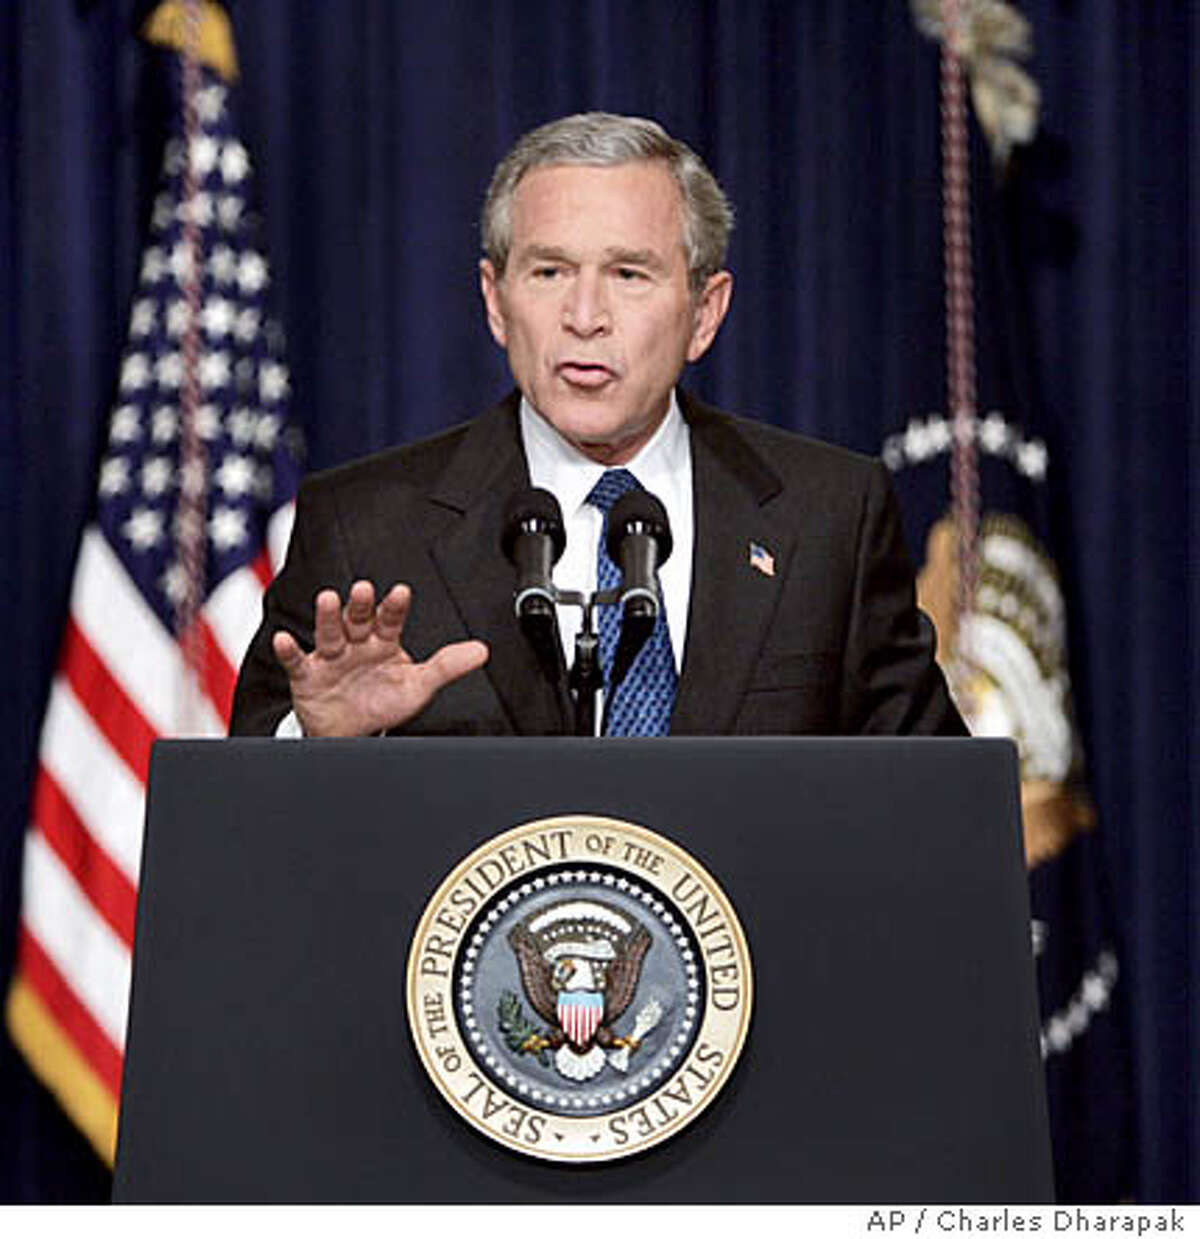 President Bush speaks to reporters at his first news conference following his re-election at the Eisenhower Executive Office Building Thursday, Nov. 4, 2004 in Washington. (AP Photo/Charles Dharapak)